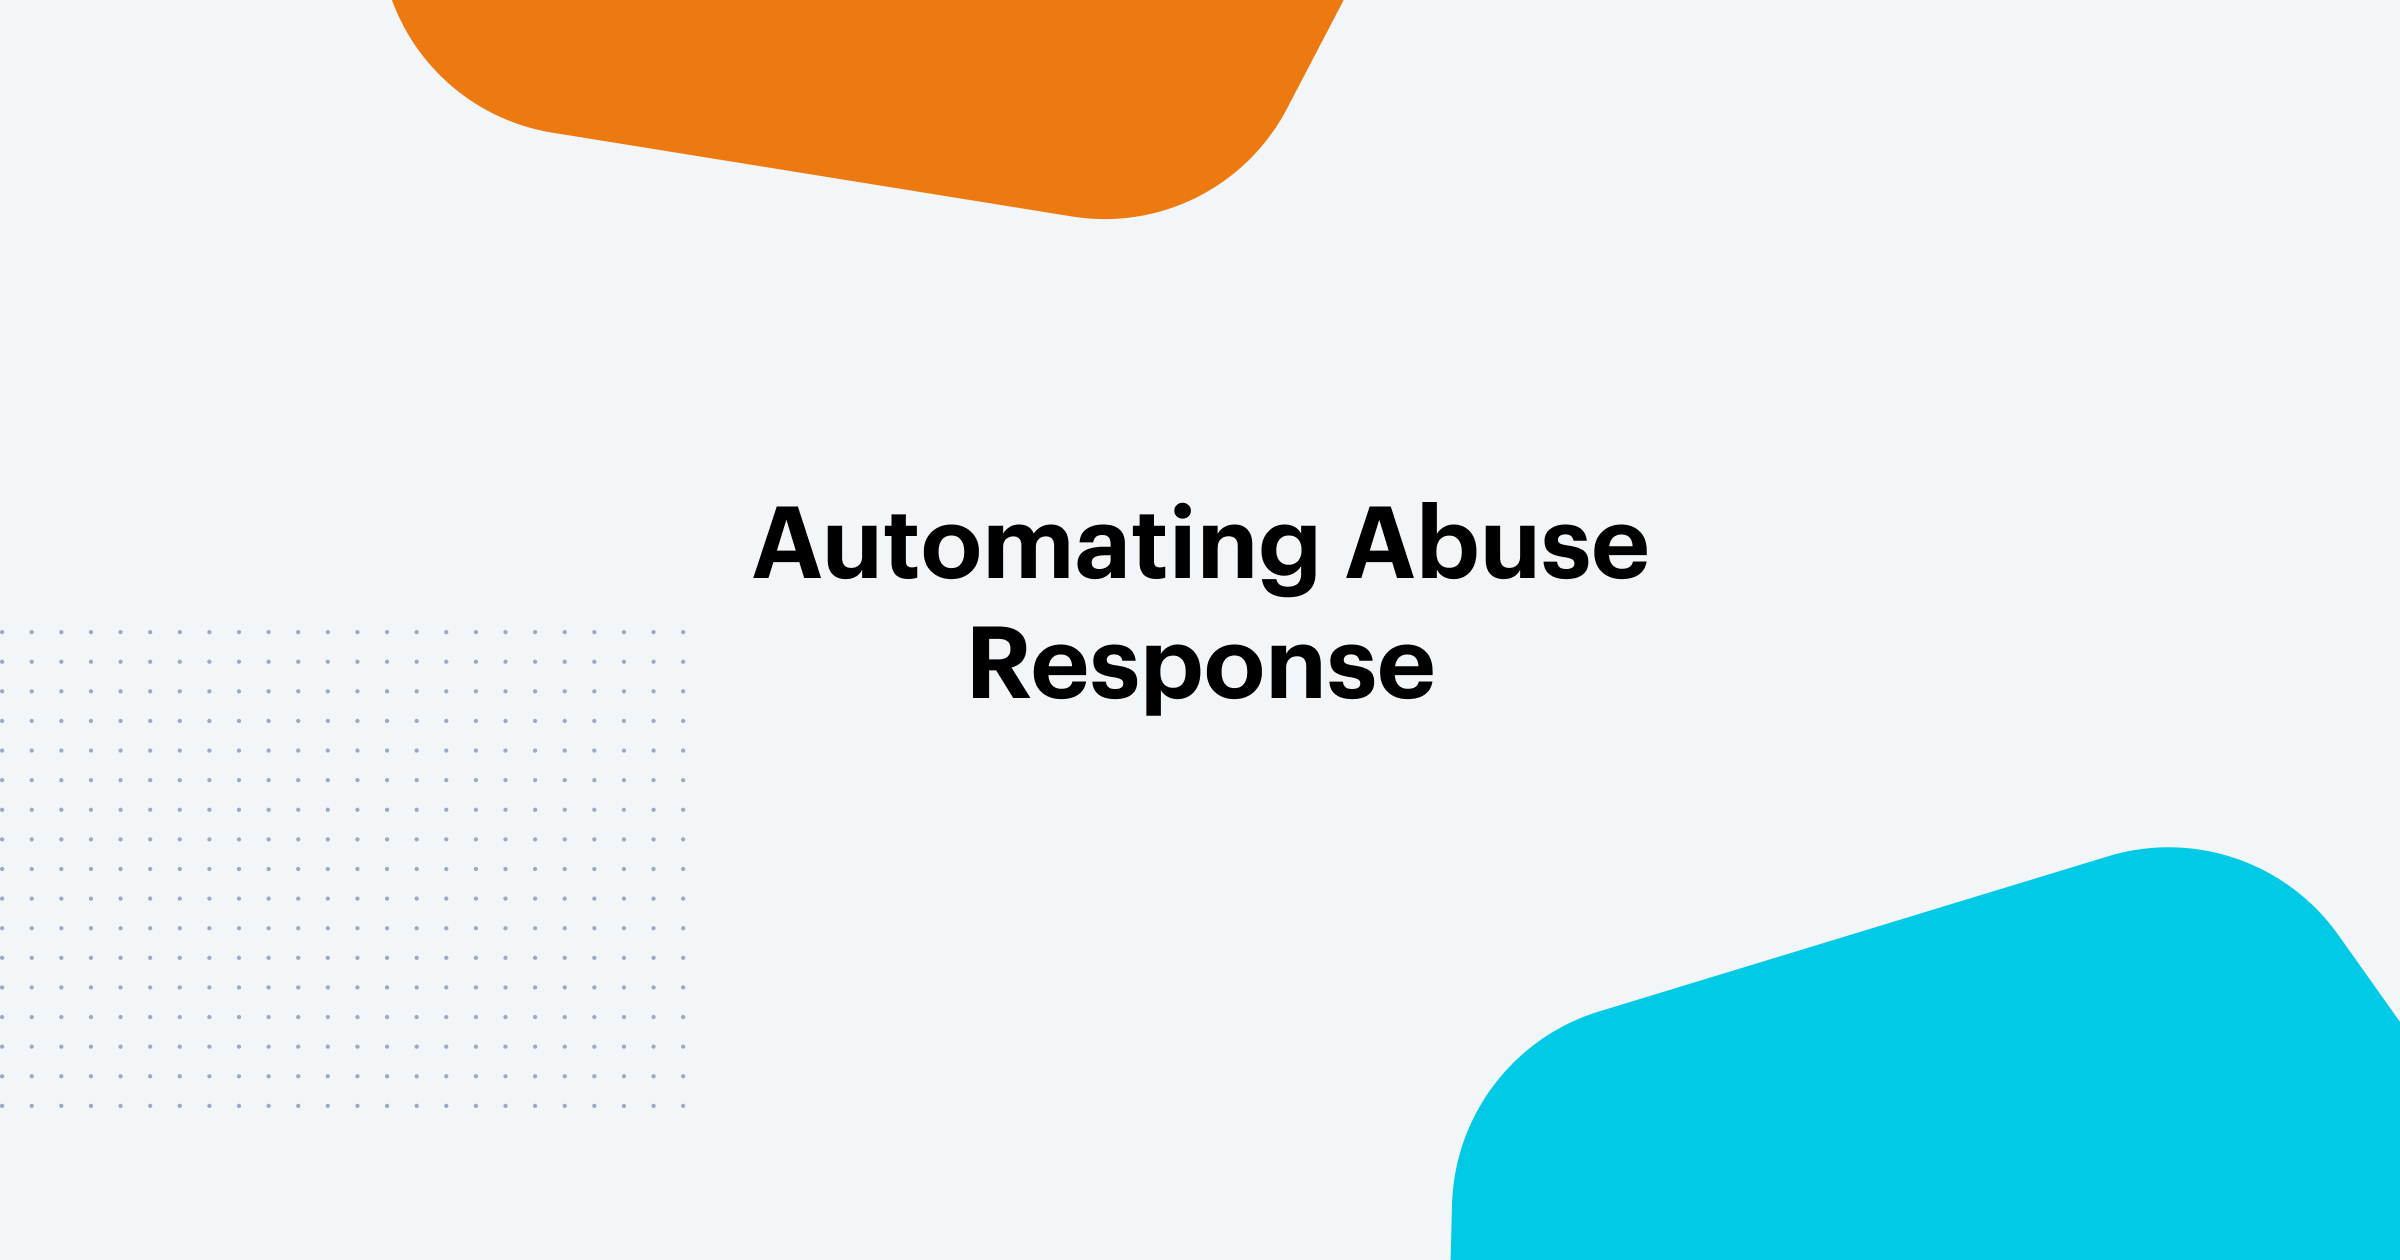 Automating Abuse Response